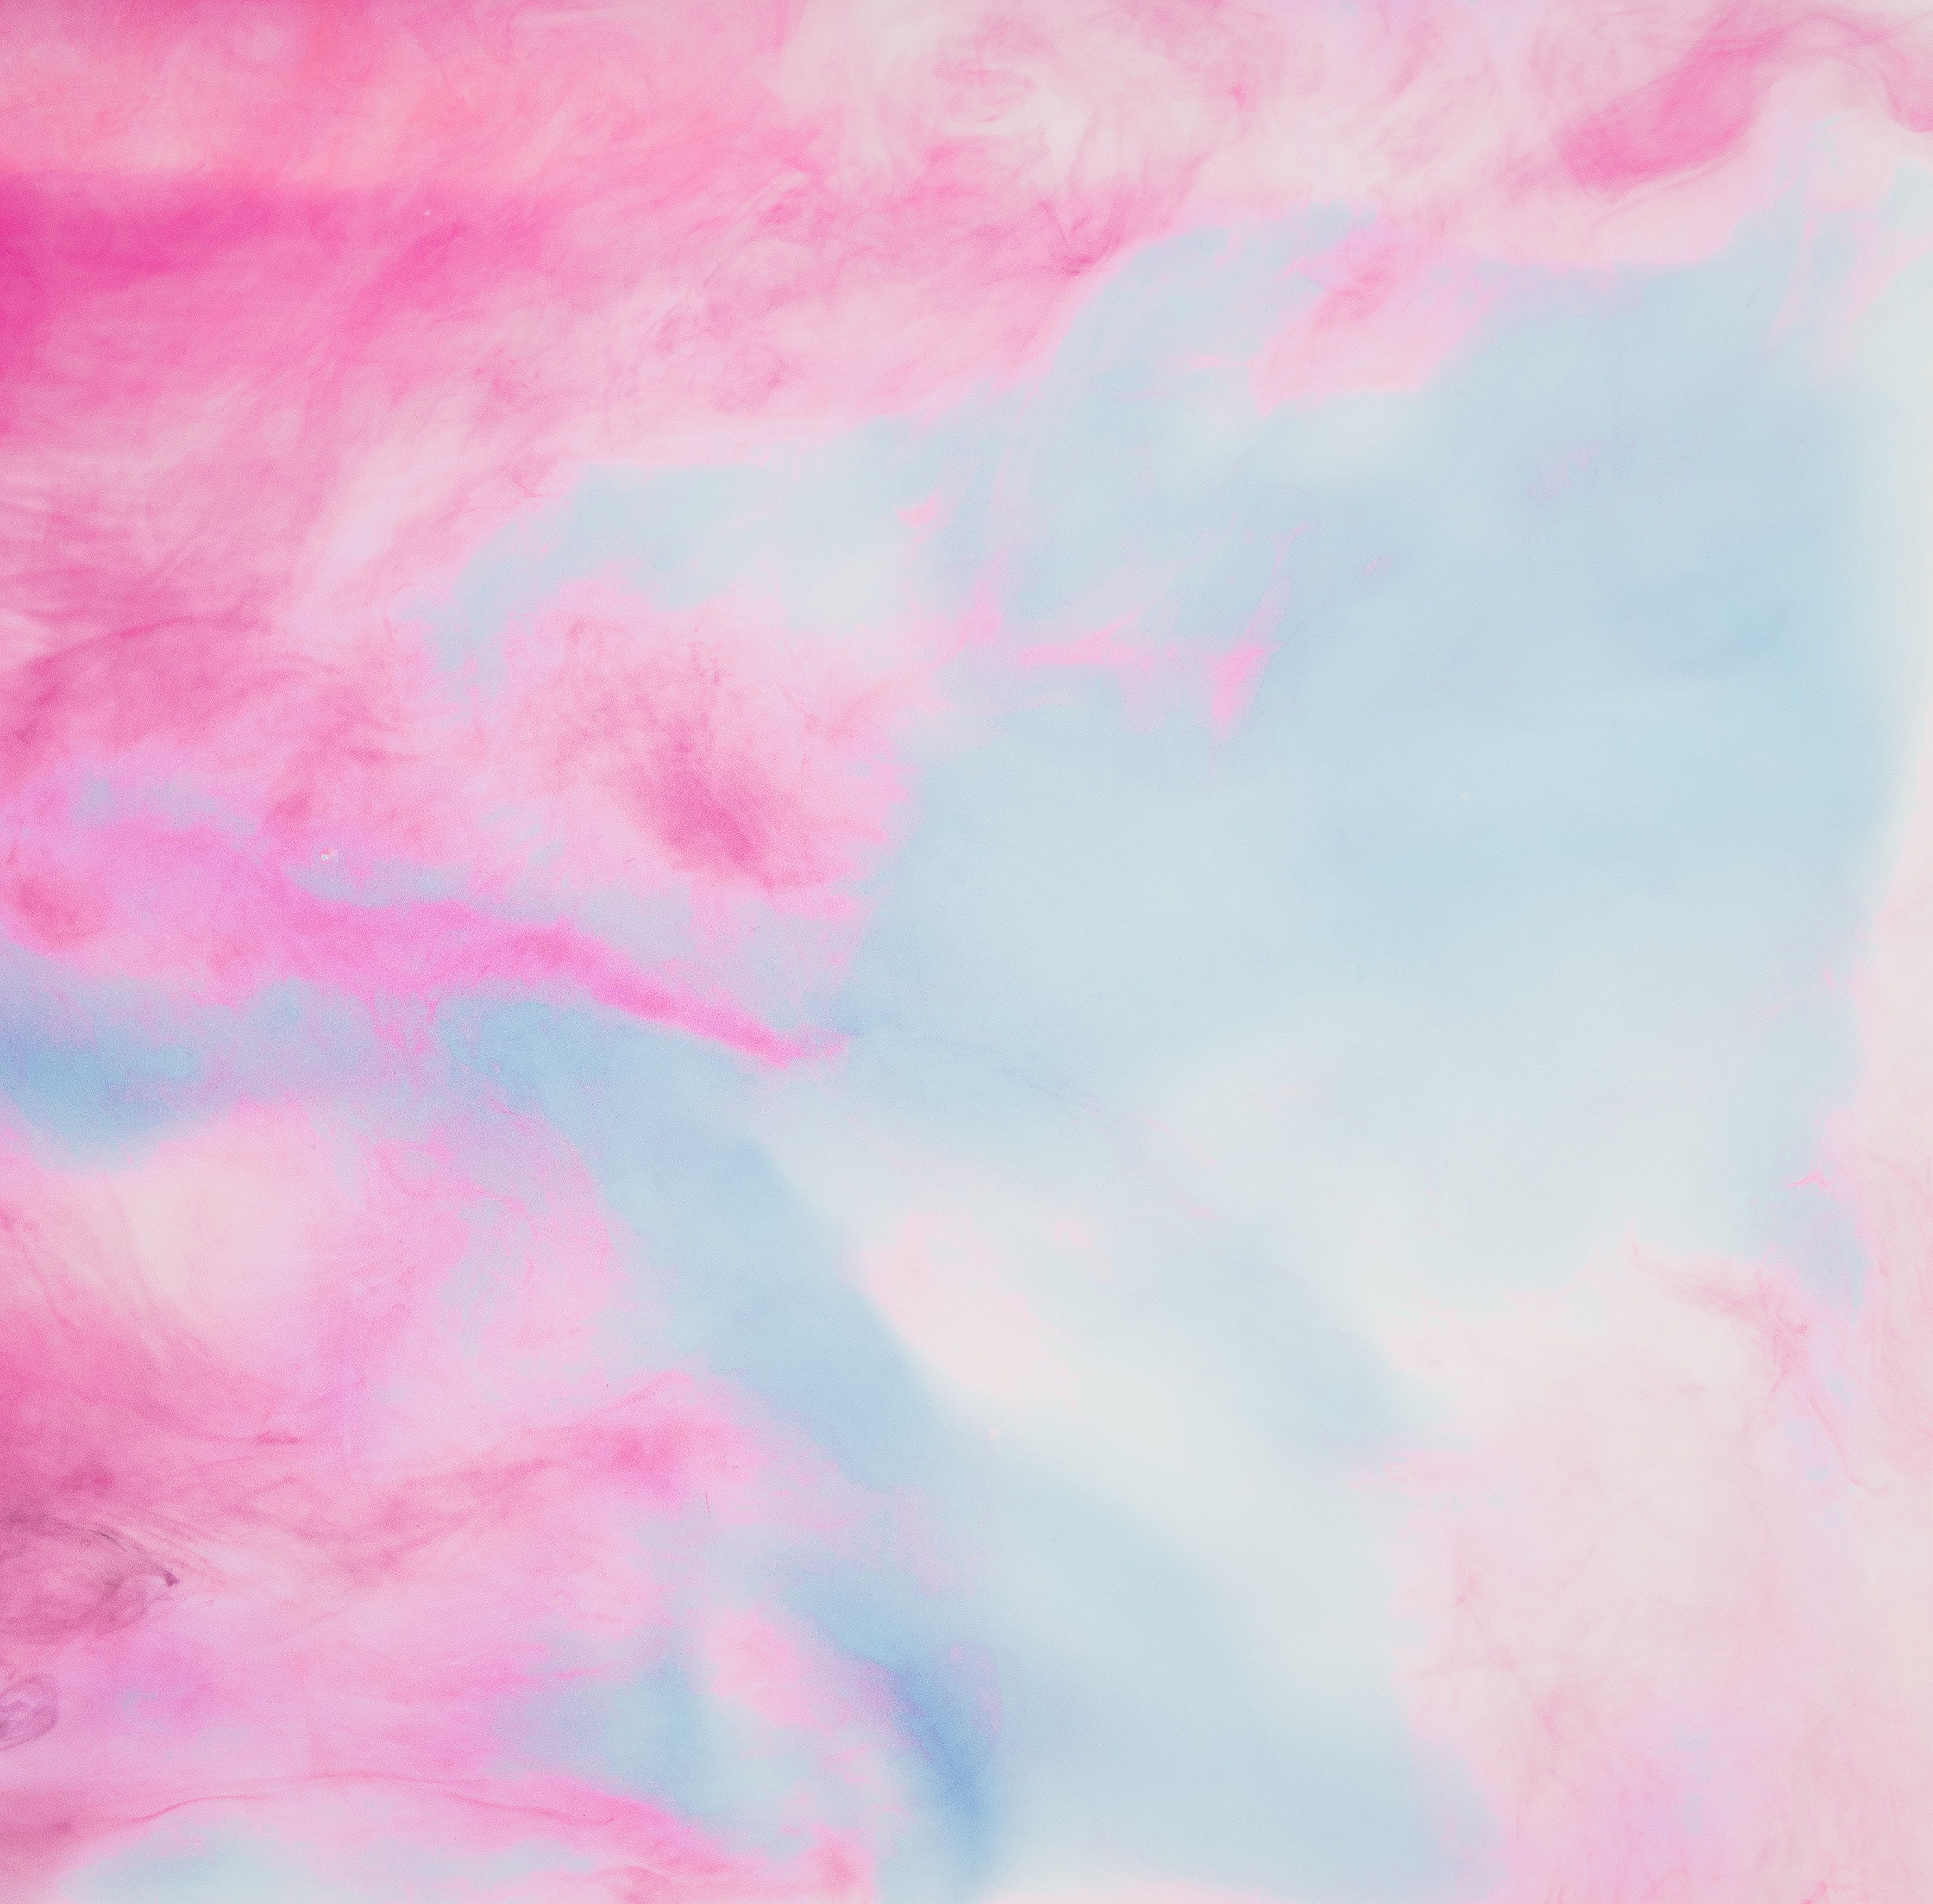 Pink And Blue Marble Wallpapers Top Free Pink And Blue Marble Backgrounds Wallpaperaccess